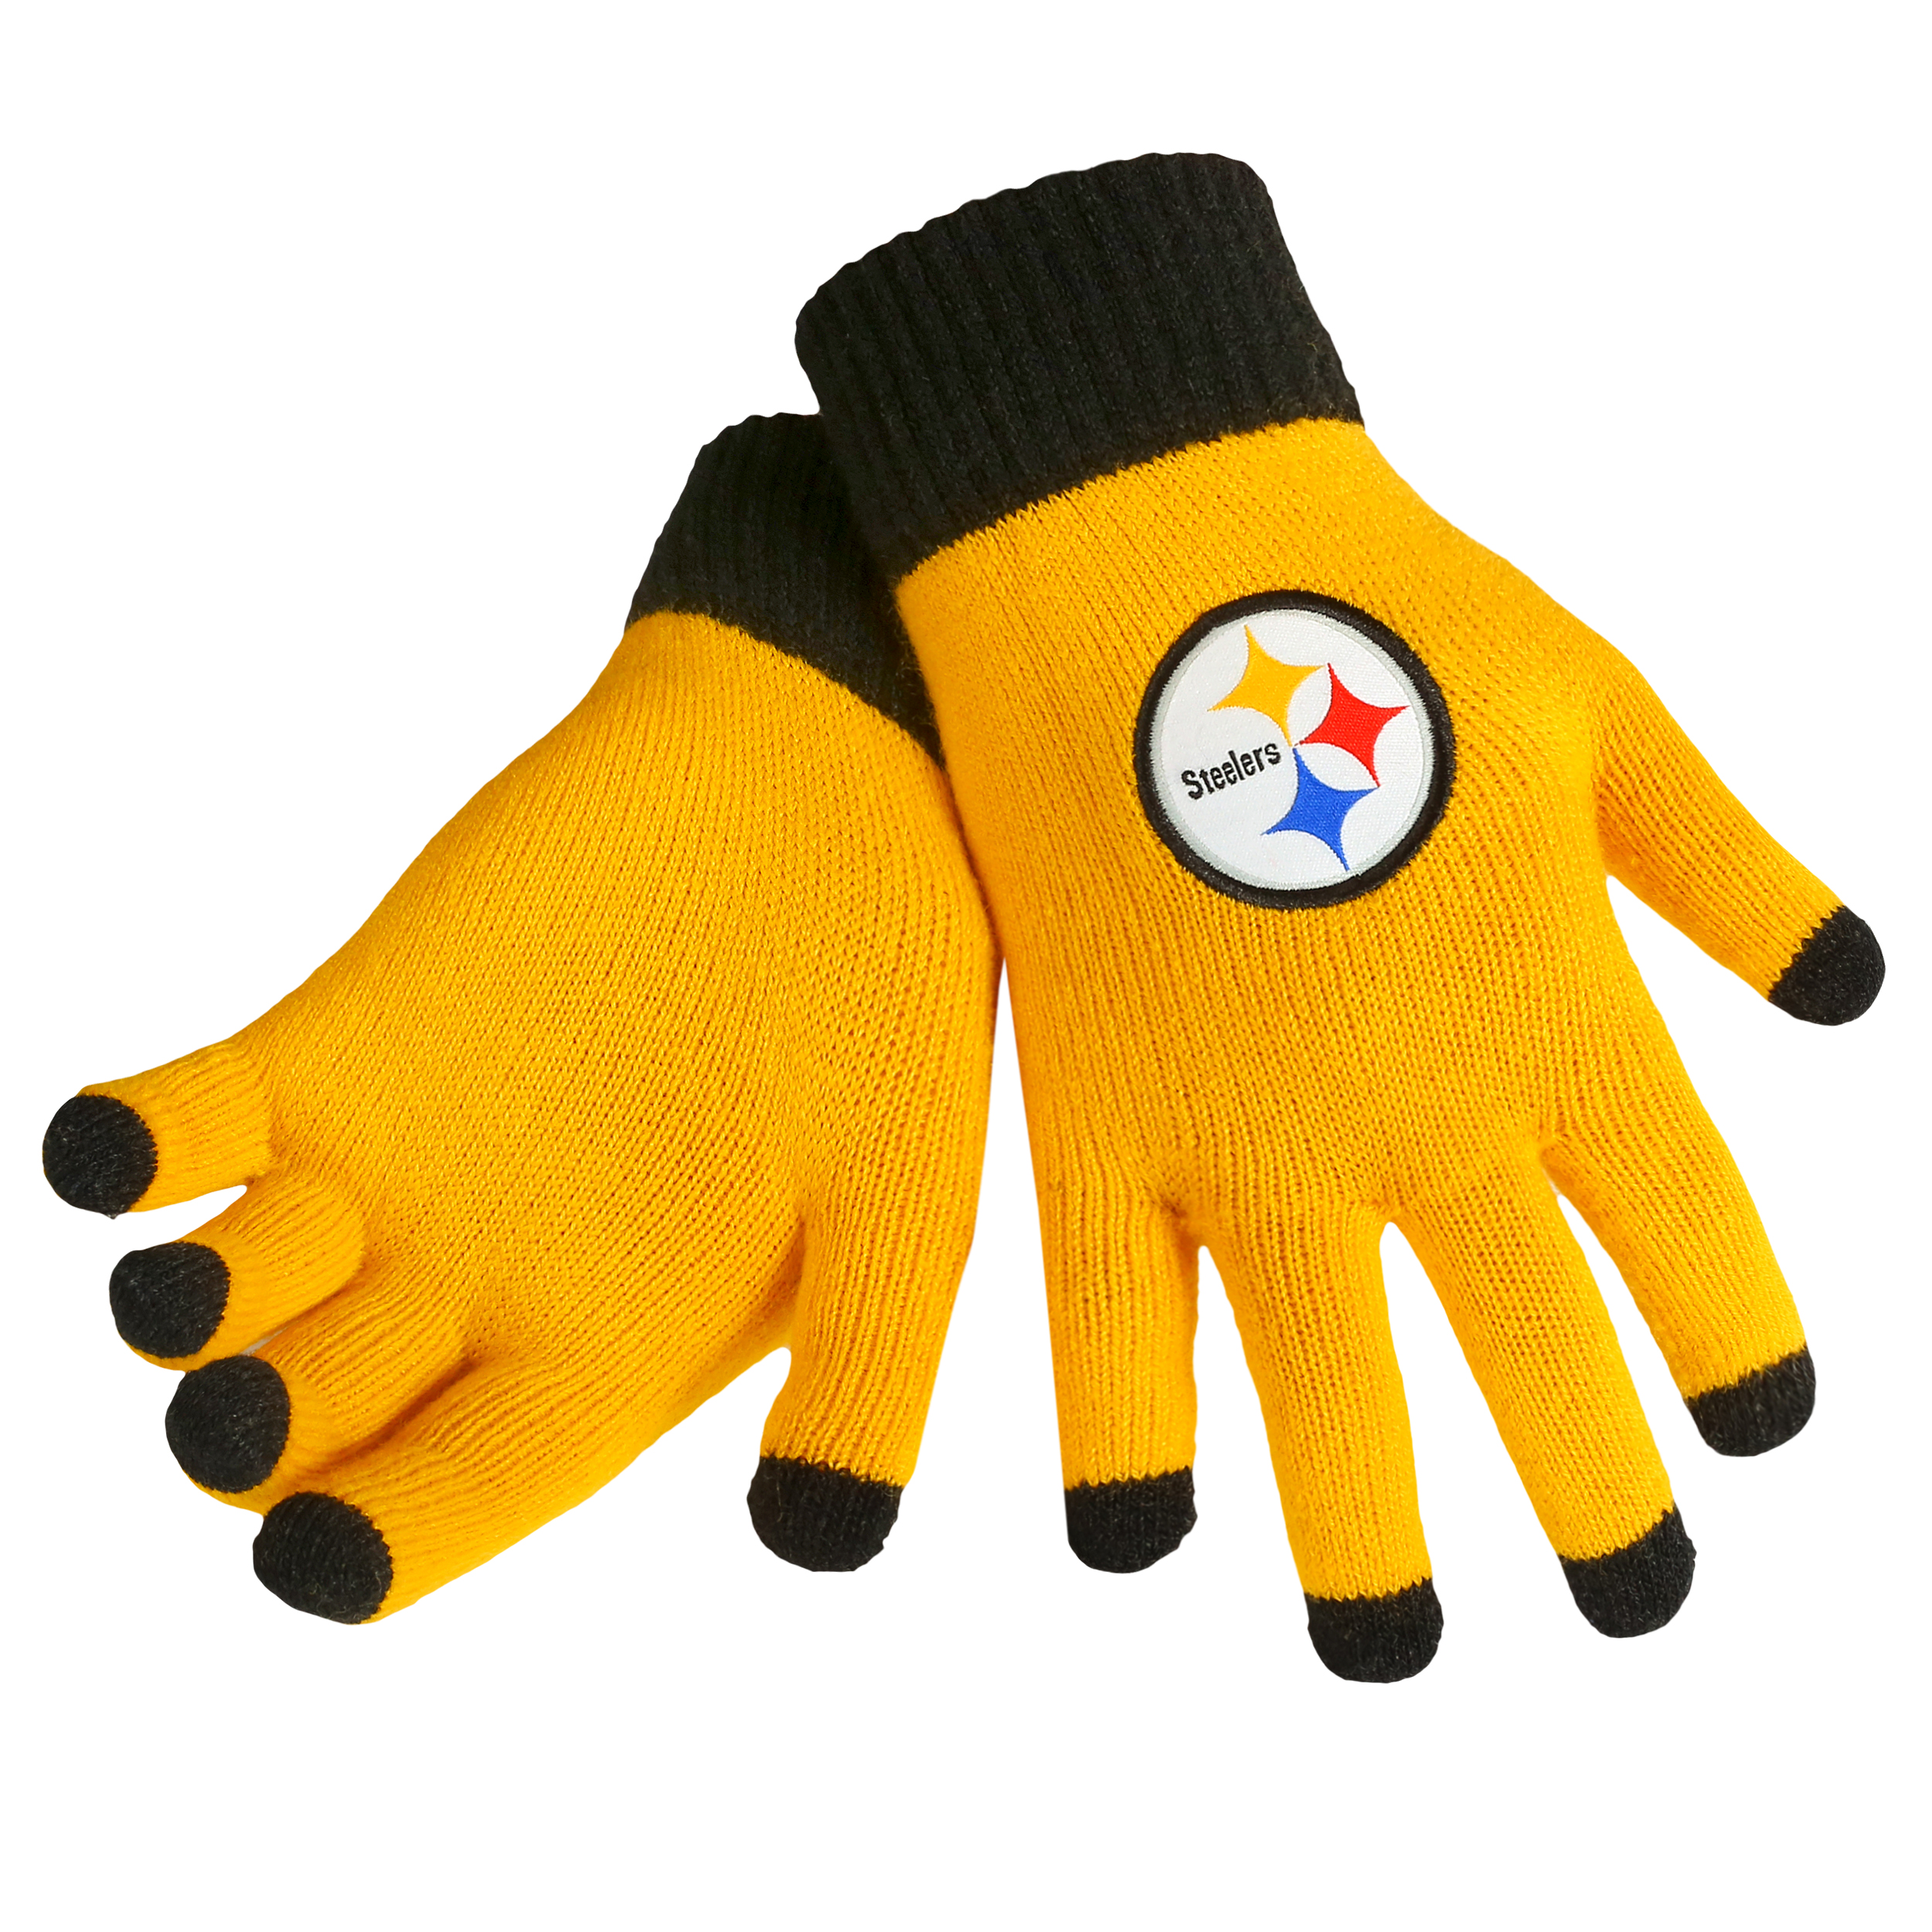 Pittsburgh Steelers Official NFL Glove Solid Outdoor Winter Stretch Knit by Forever Collectibles 240242 by Forever Collectibles